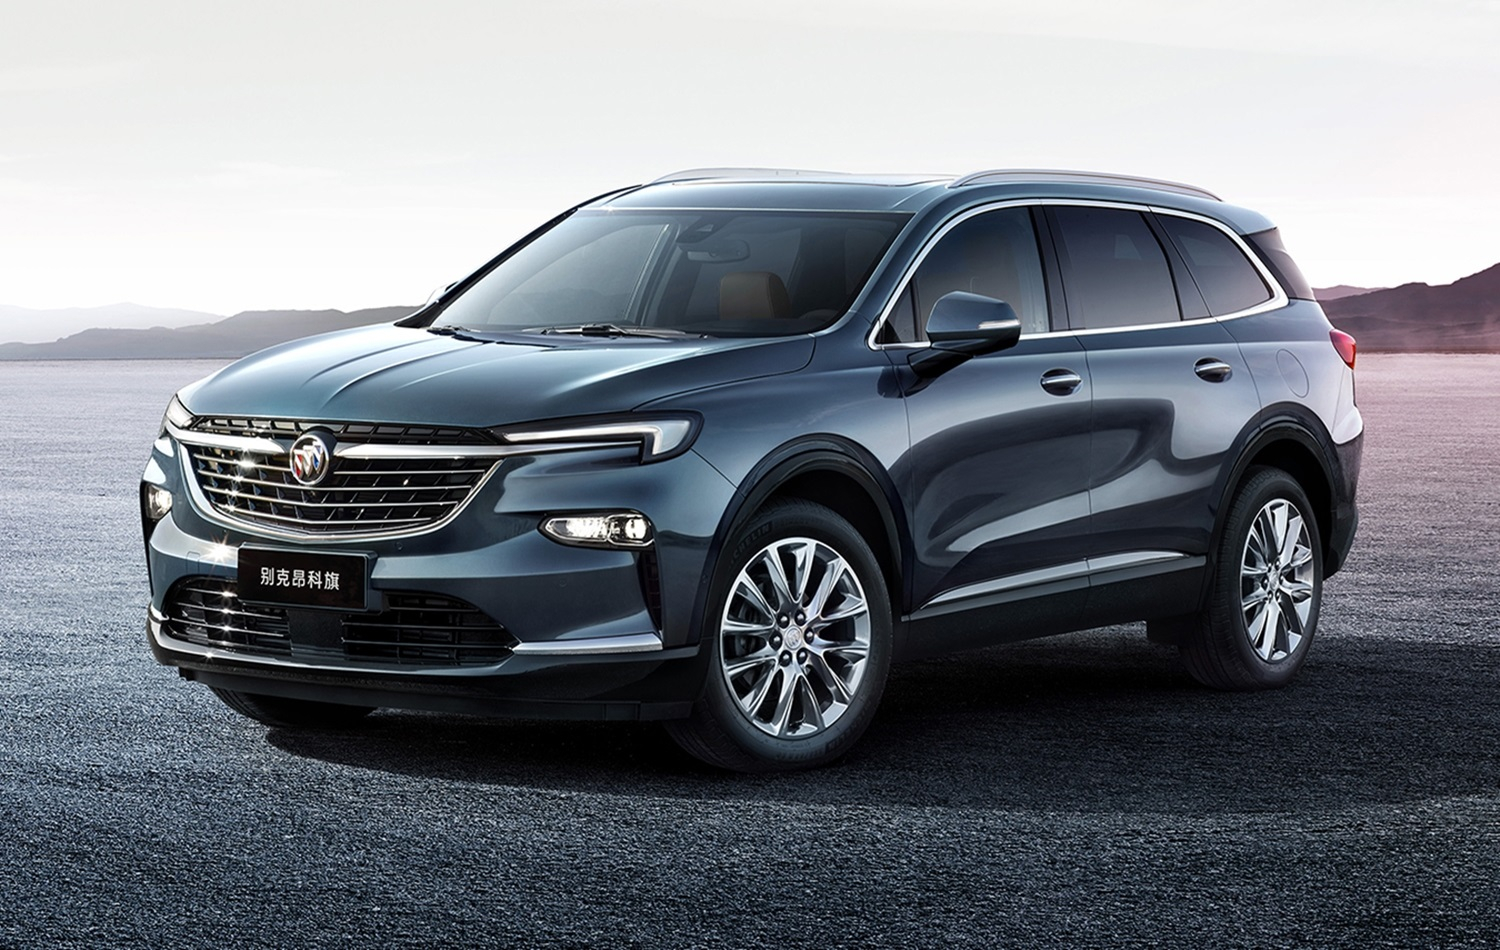 This Is The All-New Buick Enclave Crossover For China | Gm Build Your Own New 2022 Buick Enclave